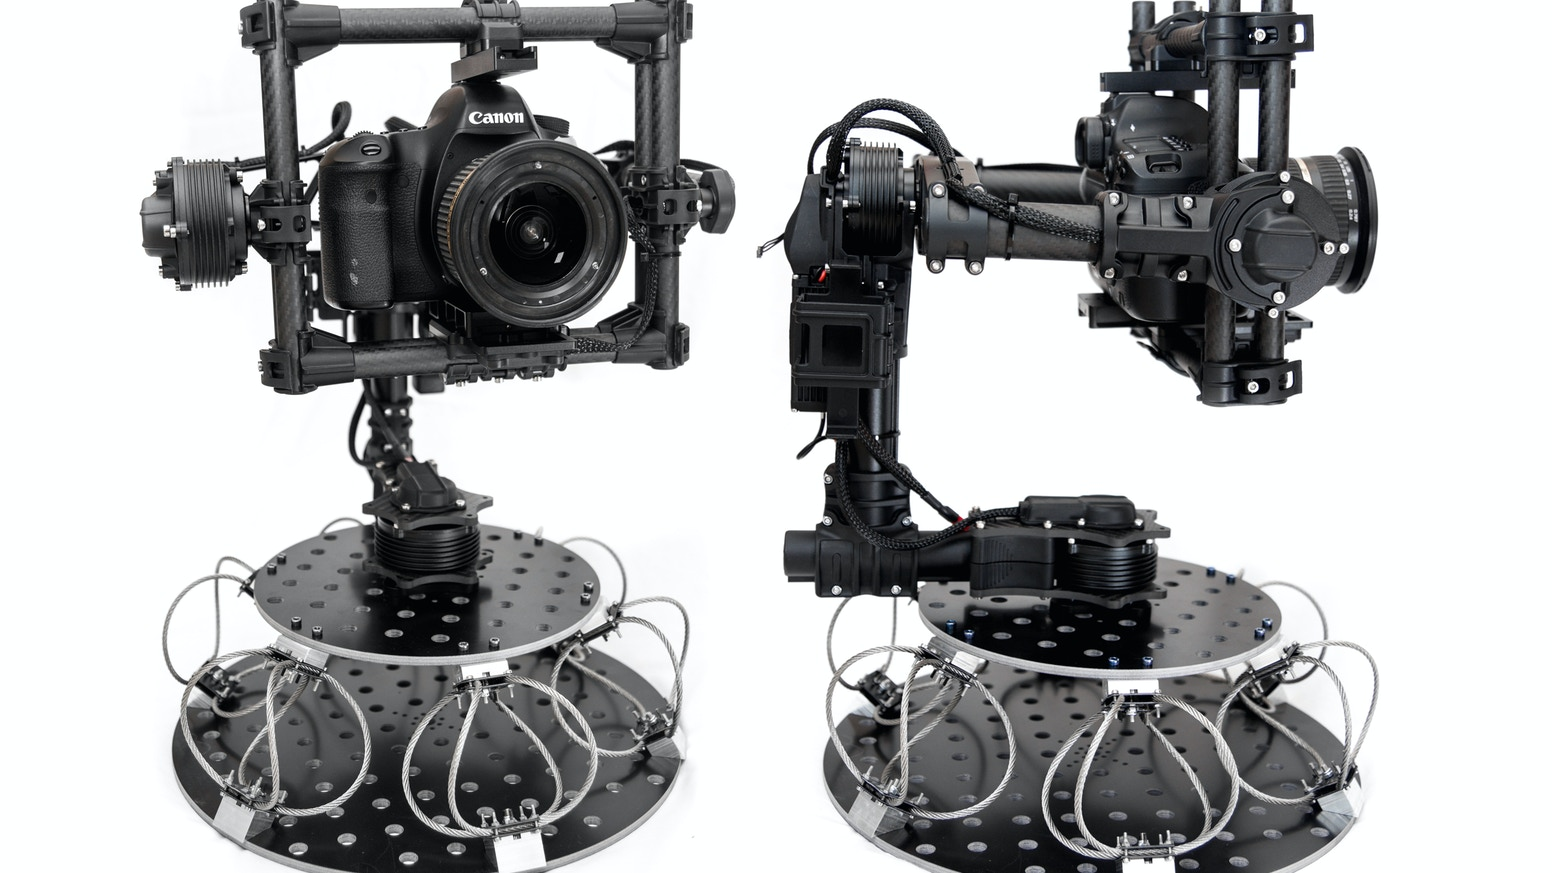 The Cinema Vibration Isolator helps remove vibration and mechanical stress from camera gimbals mounted on vehicles.